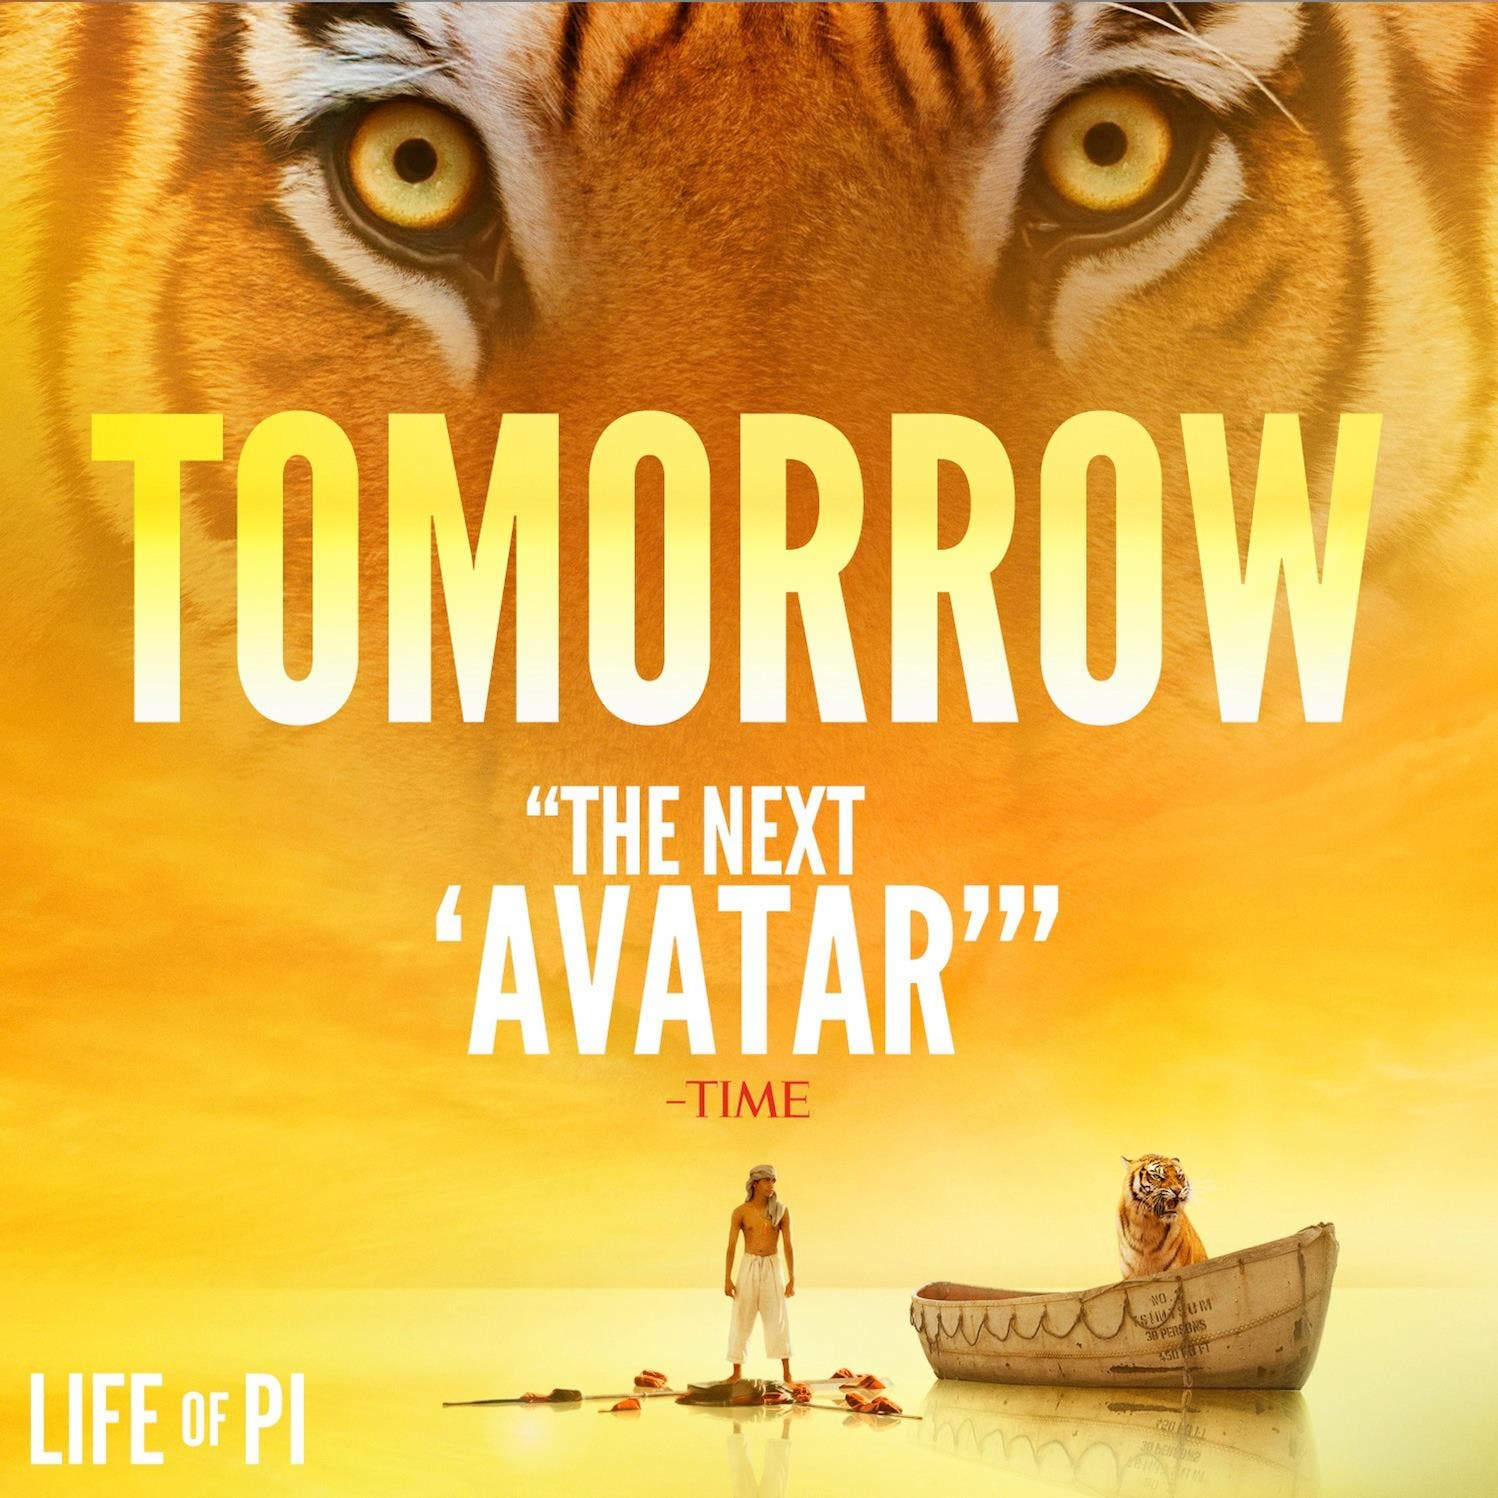 life of pi real story